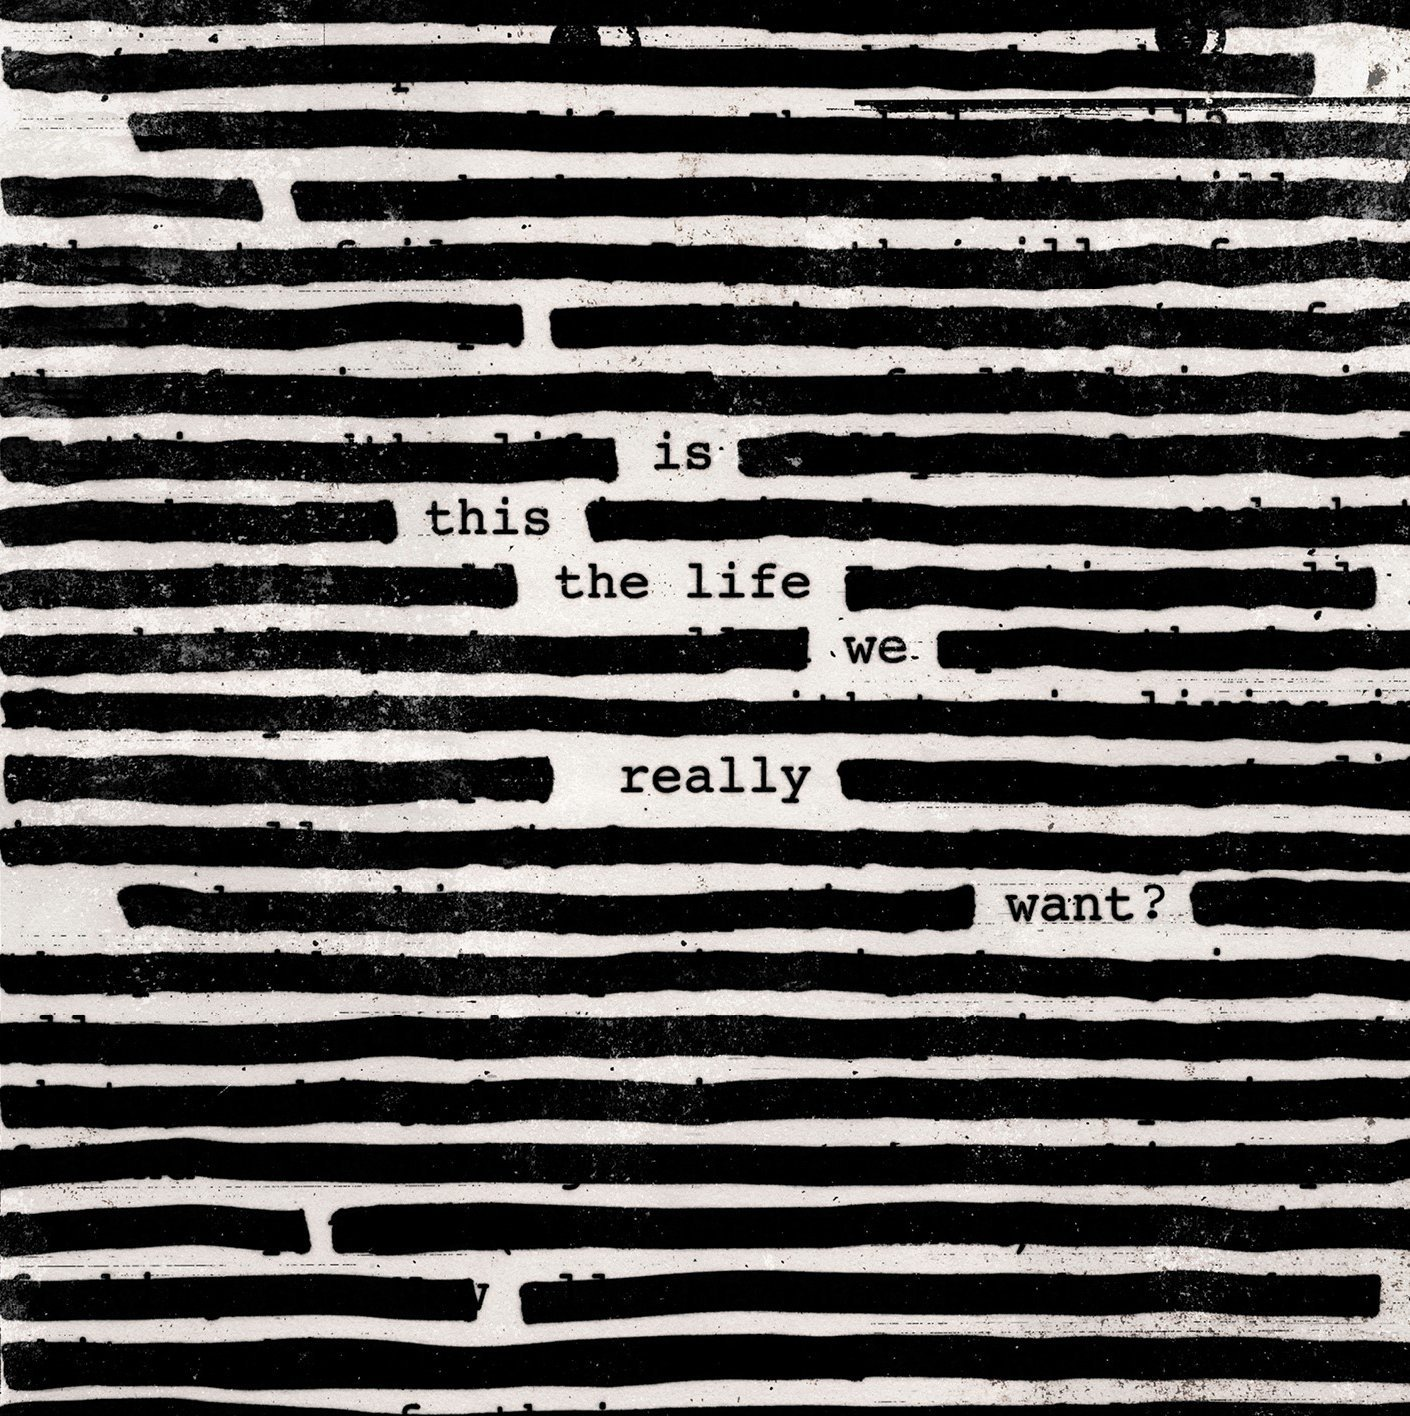 Caption: Roger Waters - Is This the Life We Really Want